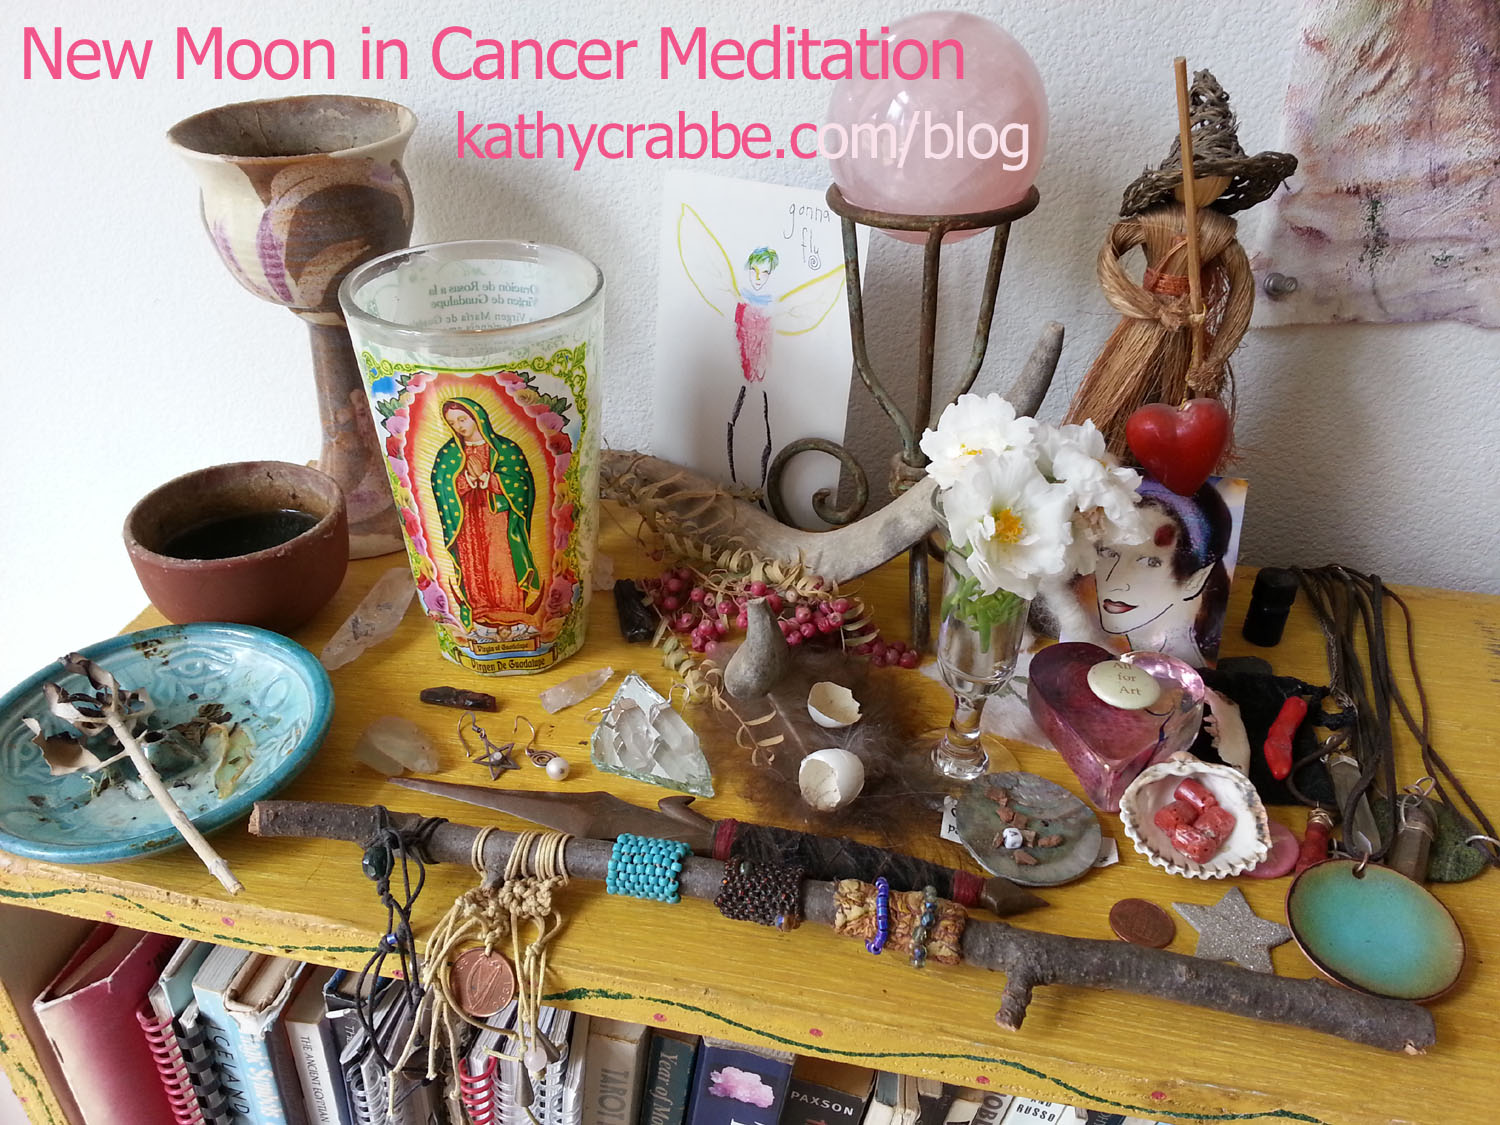 New Moon in Cancer Altarr by Kathy Crabbe